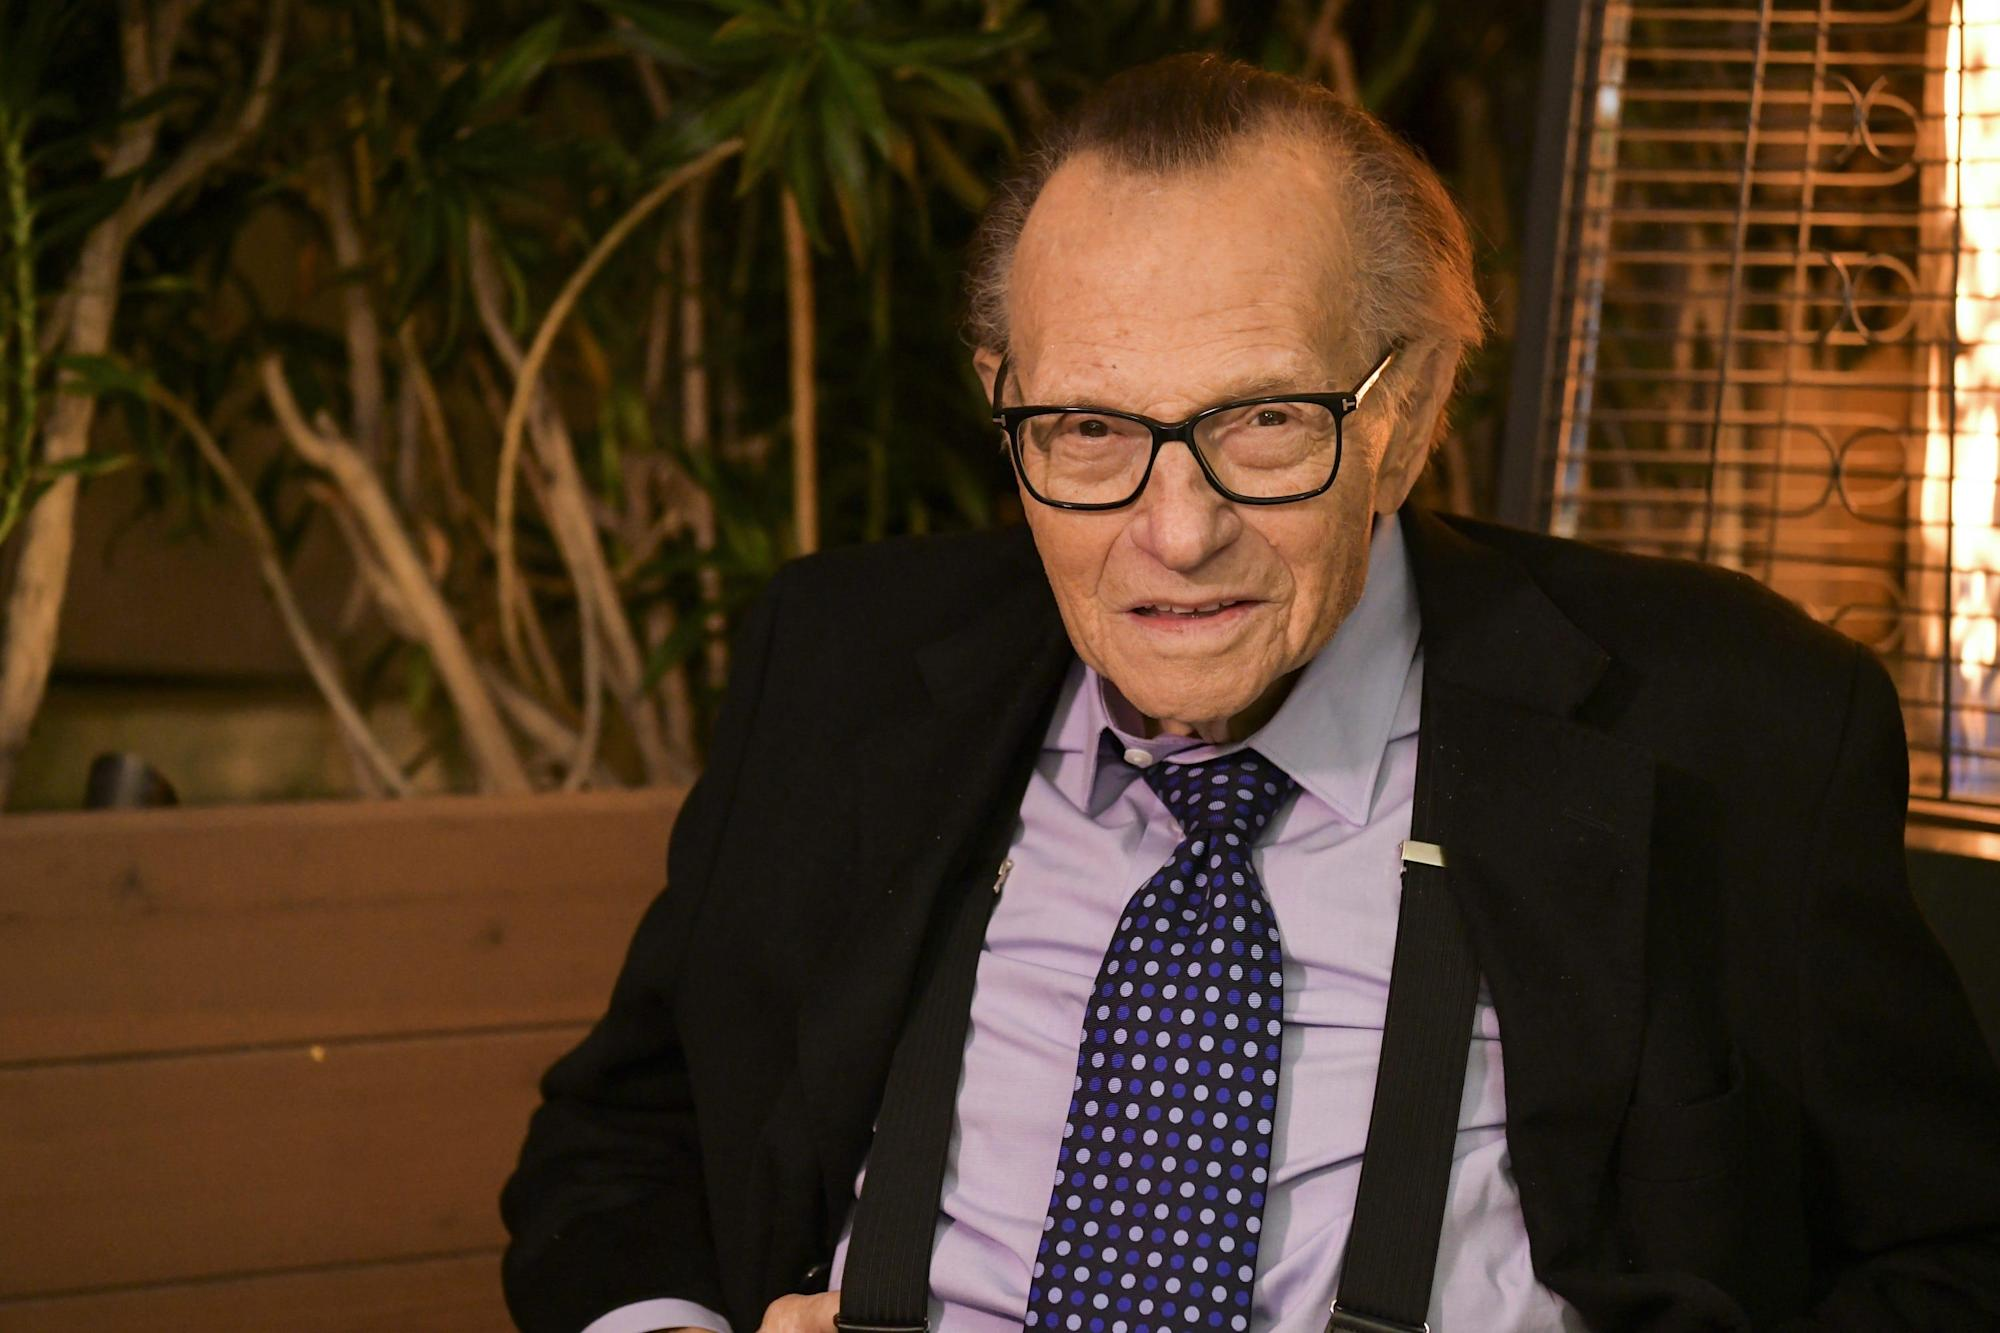 'TV is less interesting without you': Barbra Streisand, Oprah, more react to Larry King death